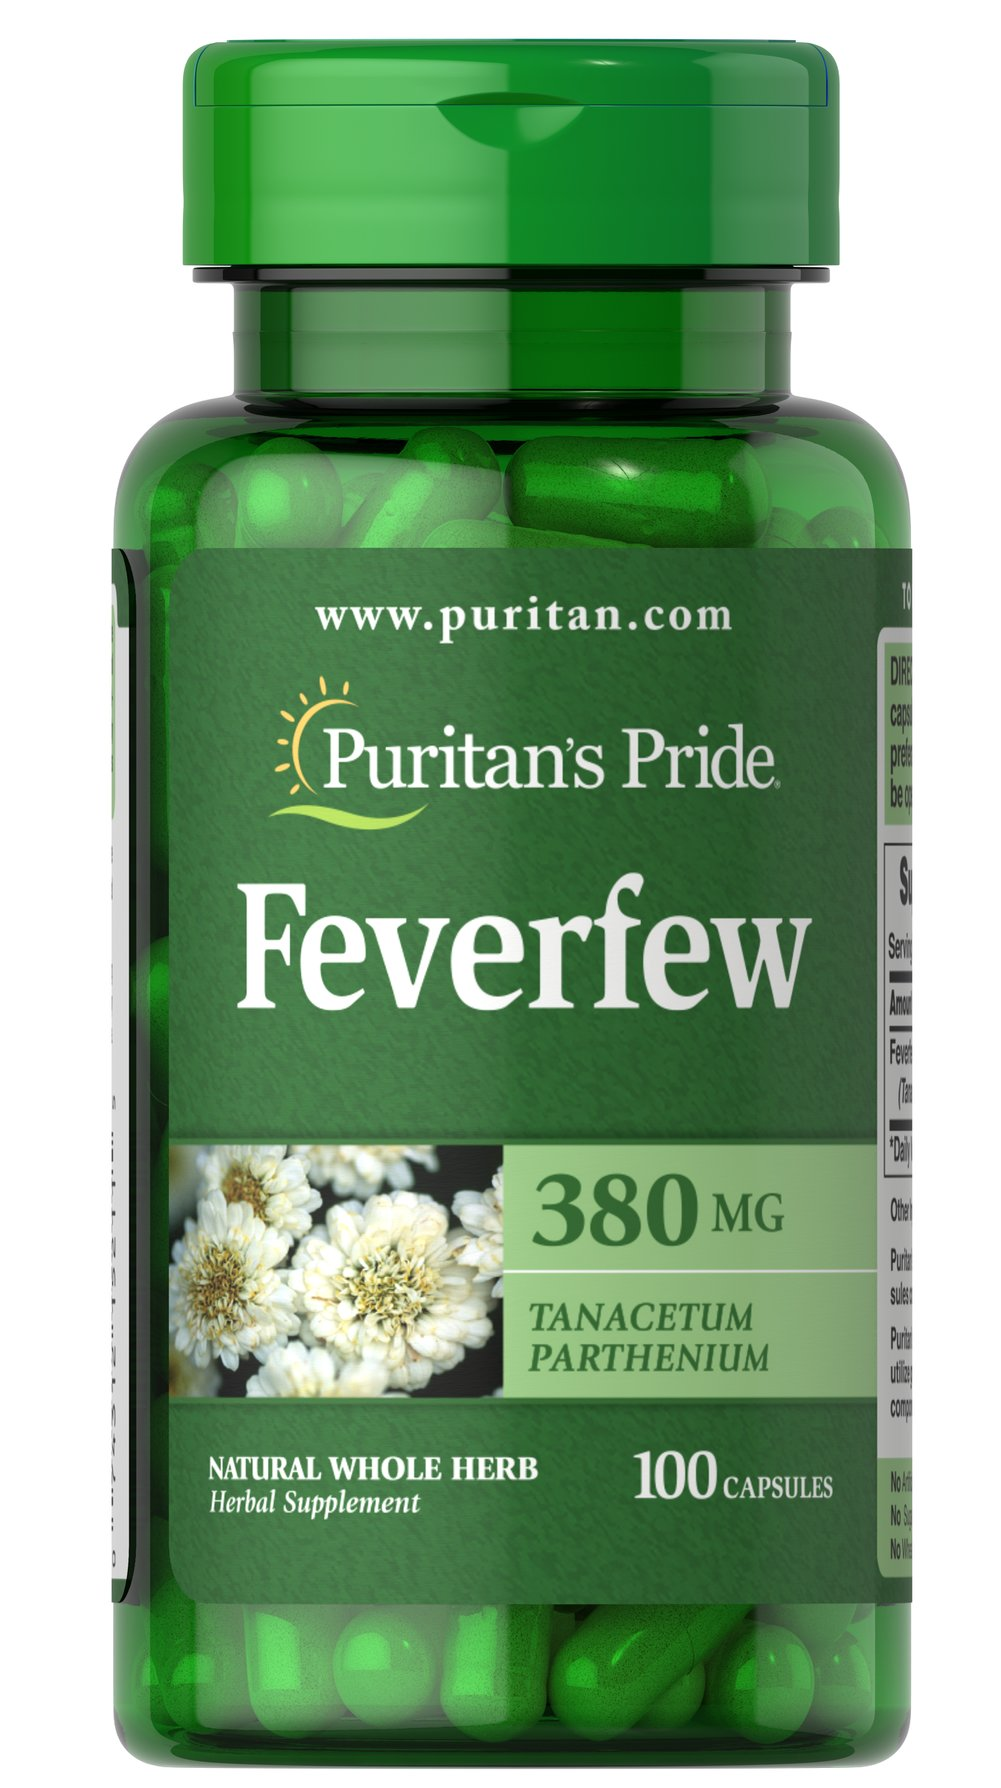 Feverfew 380 mg <p><br />Feverfew (Tanacetum parthenium) is traditionally<br />used by individuals with hectic lifestyles.**<br /><br />Puritan's Pride's preservative-free gelatin capsules<br />contain pure milled herb powder.<br /><br />Puritan's Pride's Natural Whole Herb products<br />utilize ground plant parts to provide the natural<br />components found in nature.</p> 100 Capsules 380 mg $7.99